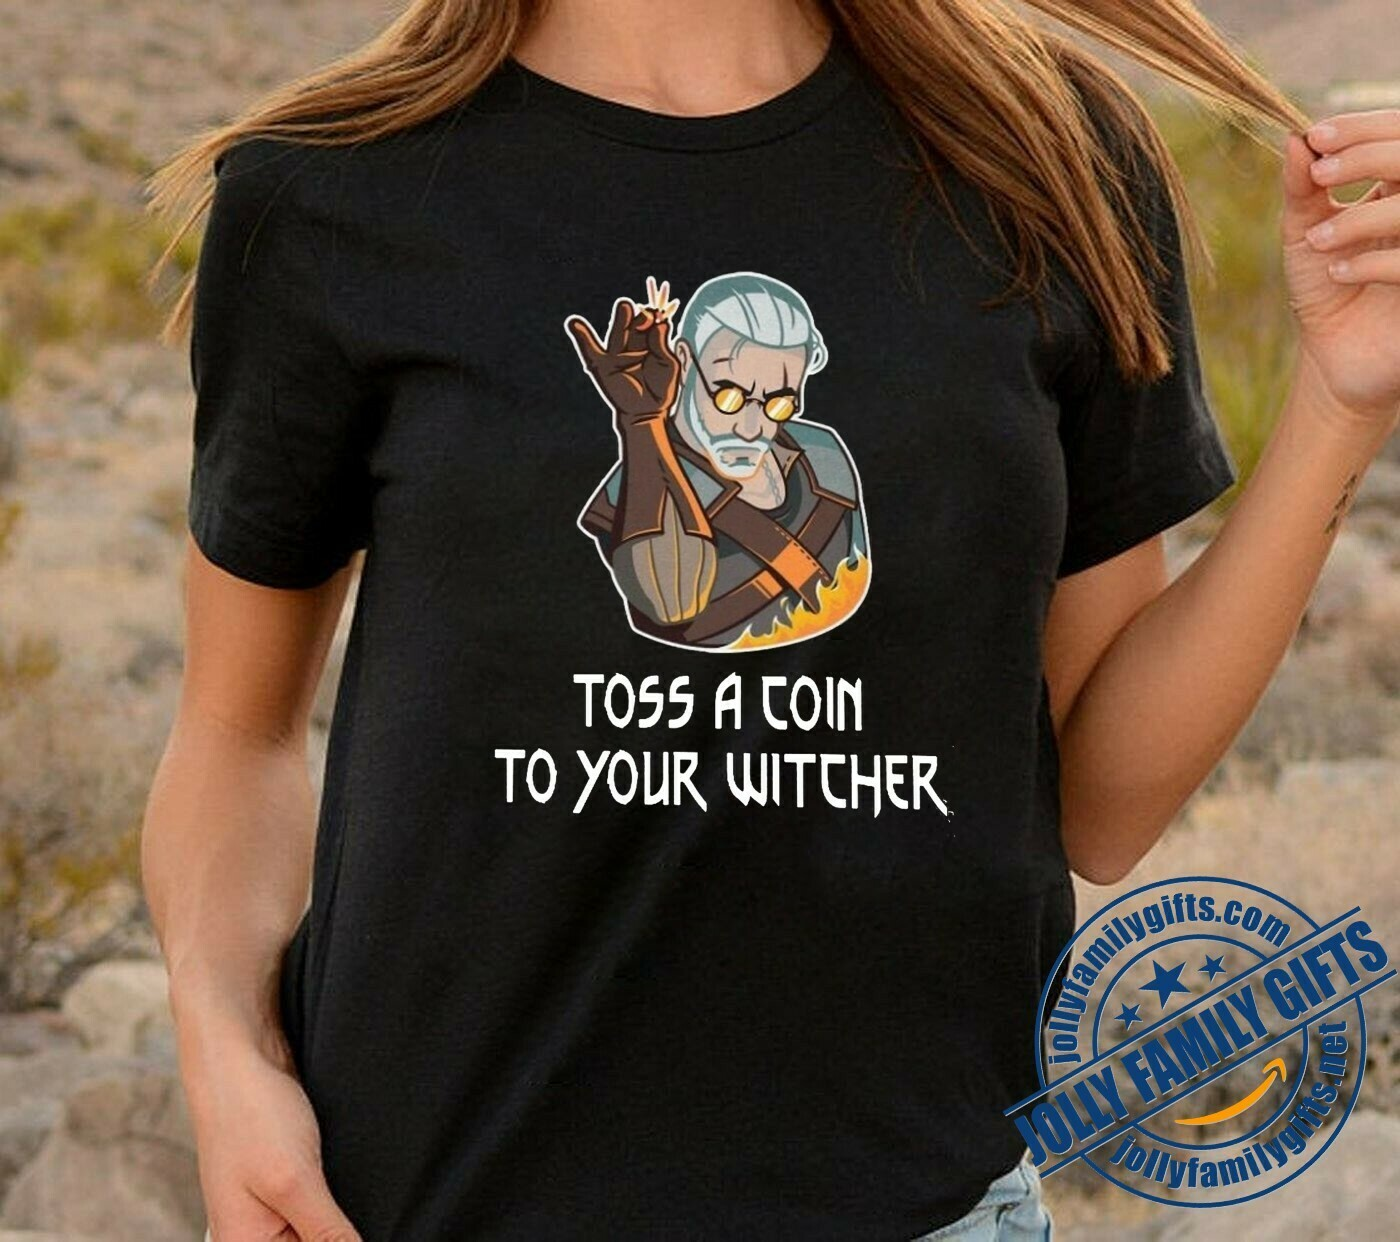 Witcher Geralt Toss a Coin to Your Witcher Funny,Witcher 3 Geralt Of Rivia With Medallion fan  Unisex T-Shirt Hoodie Sweatshirt Sweater for Ladies Women Men Kids Youth Gifts Tee Jolly Family Gifts